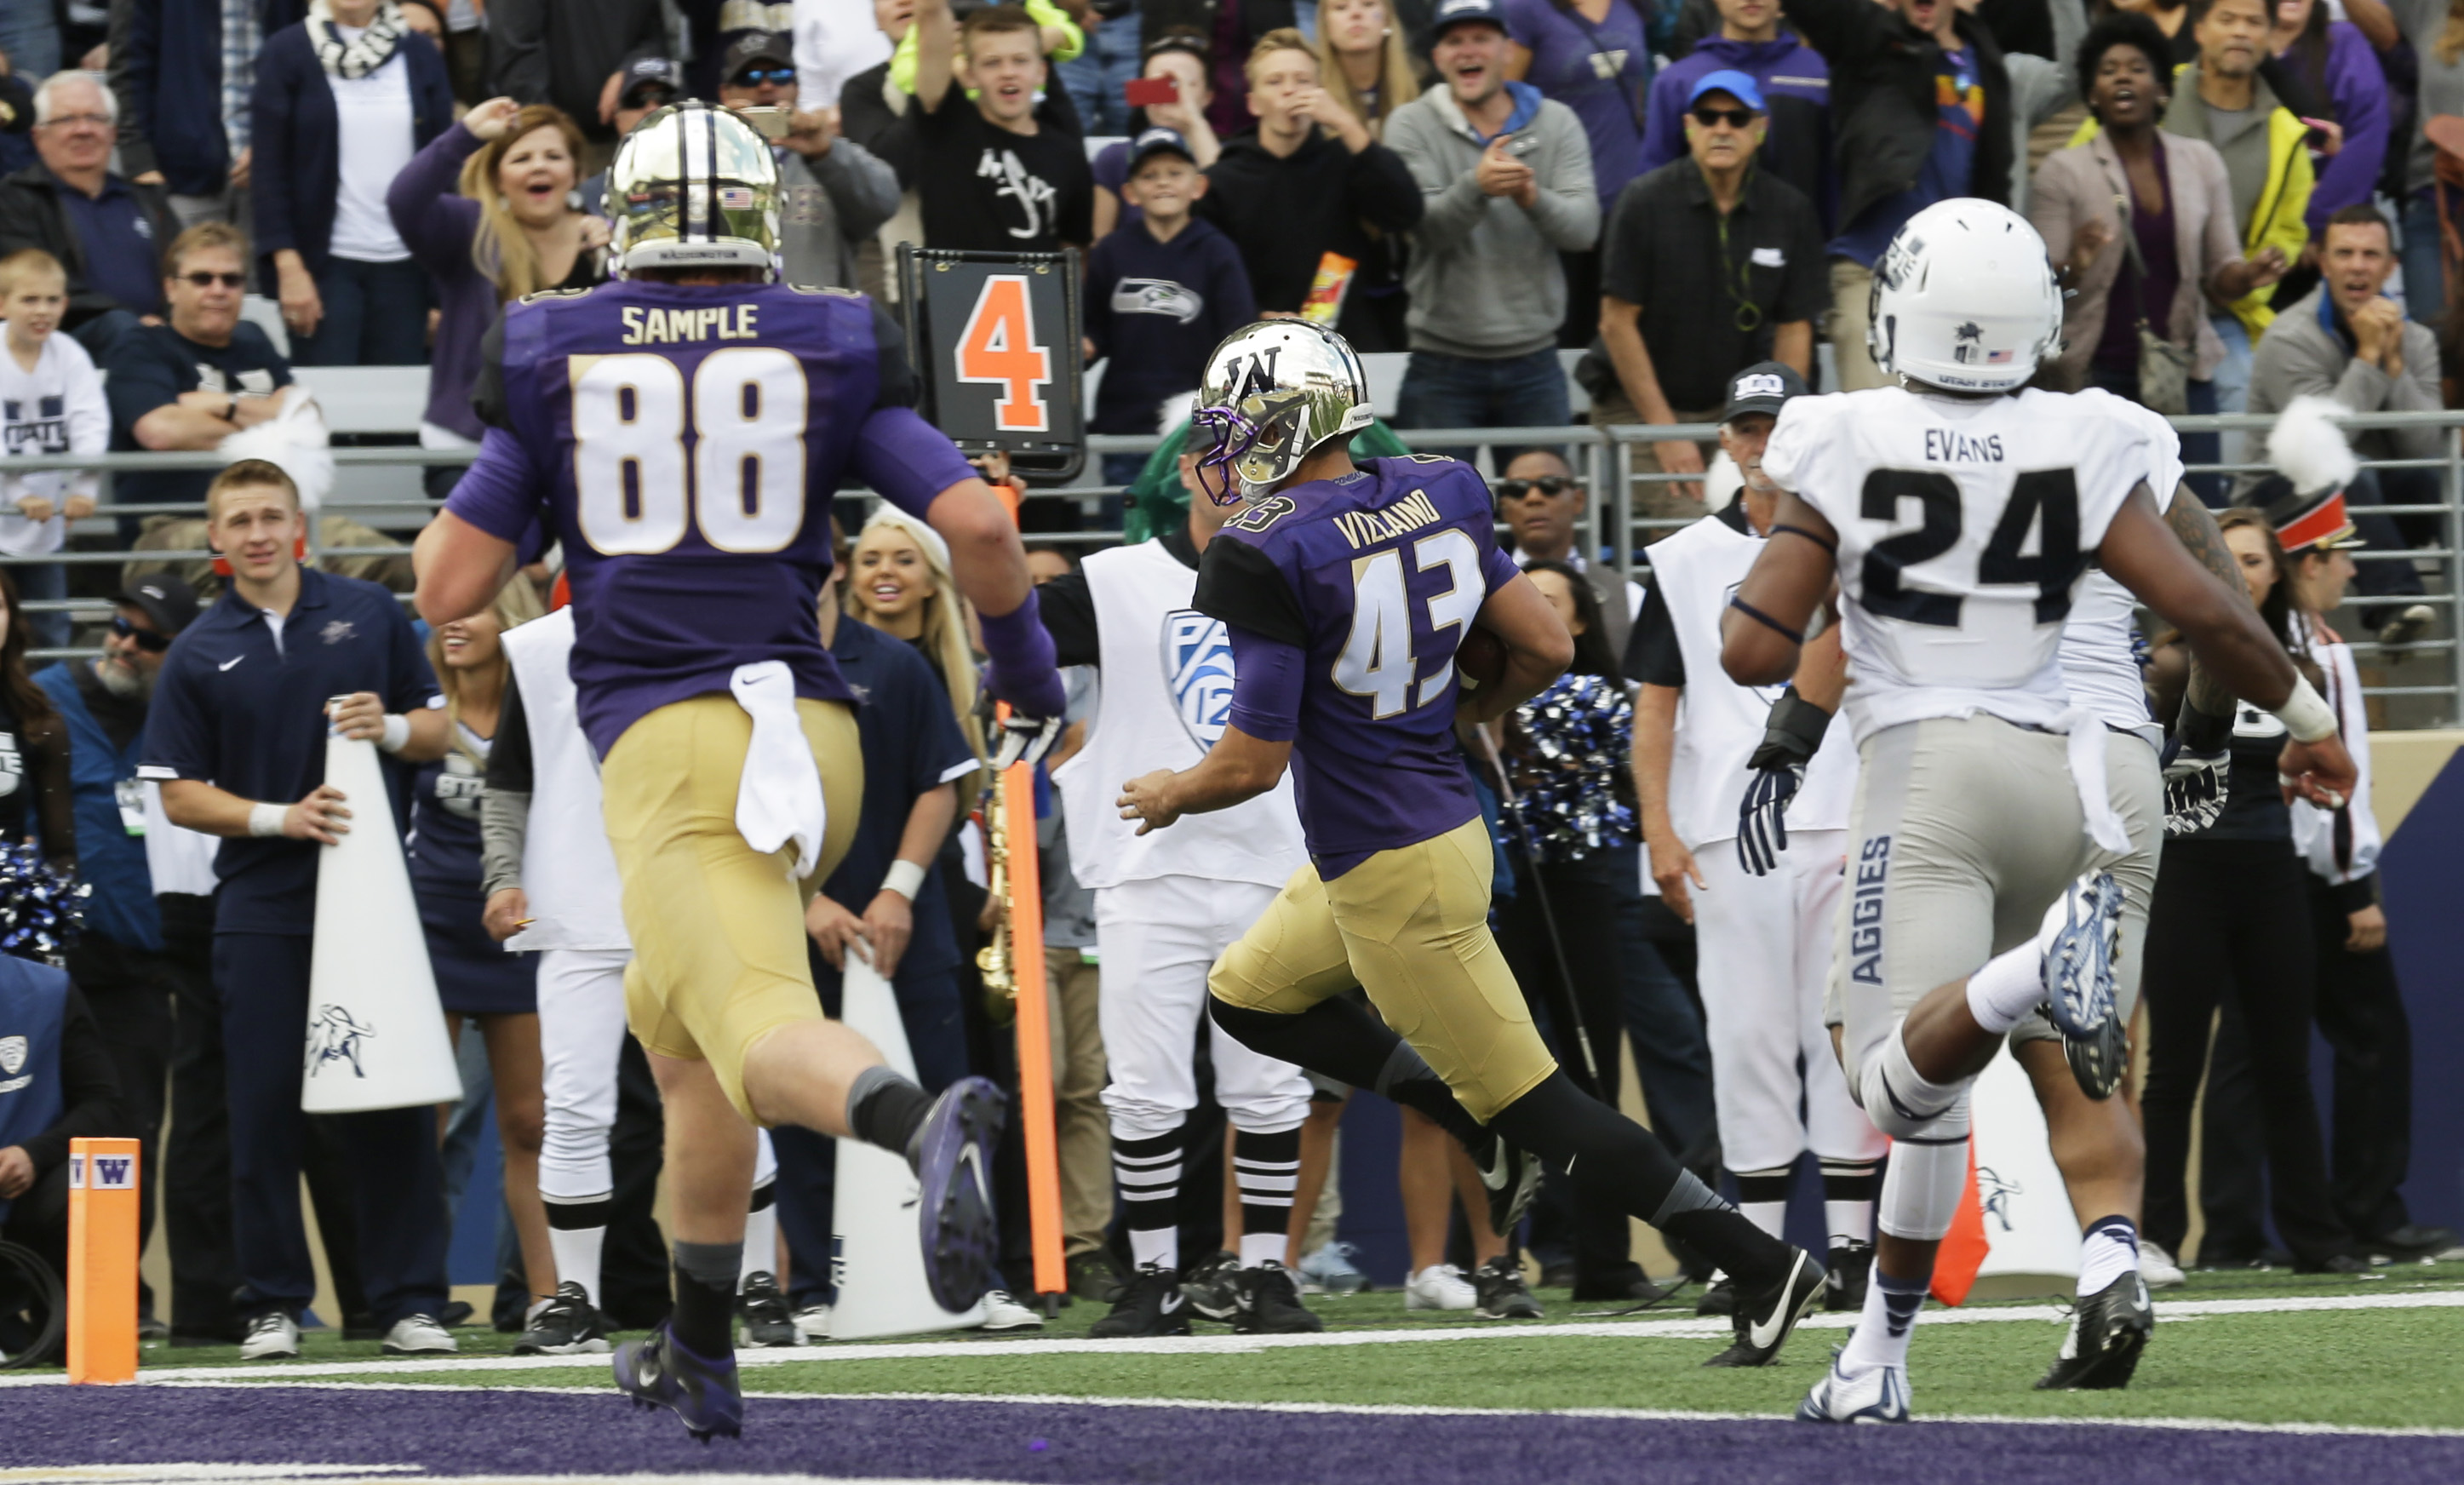 Washington kicker Tristan Vizcaino (43) runs for a touchdown on a fake field goal play as Utah State' Marwin Evans (24) pursues and Washington's Drew Sample (88) watches in the first half of an NCAA college football game, Saturday, Sept. 19, 2015, in Seat